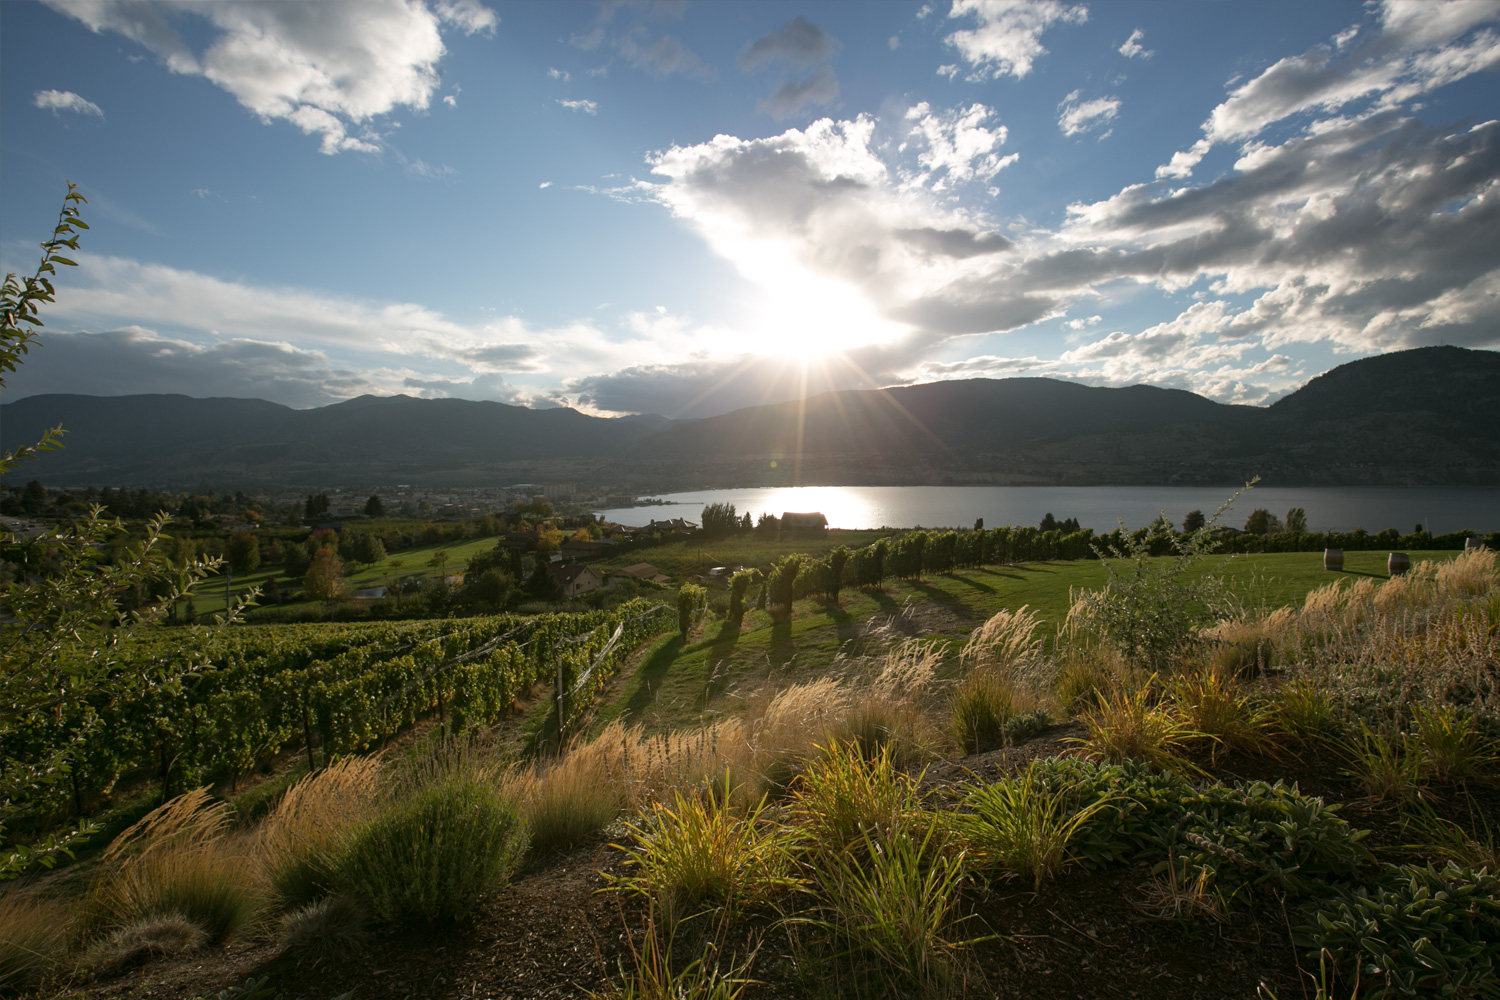 View from the Vanilla Pod Restaurant at Poplar Grove Winery. South Okanagan, BC